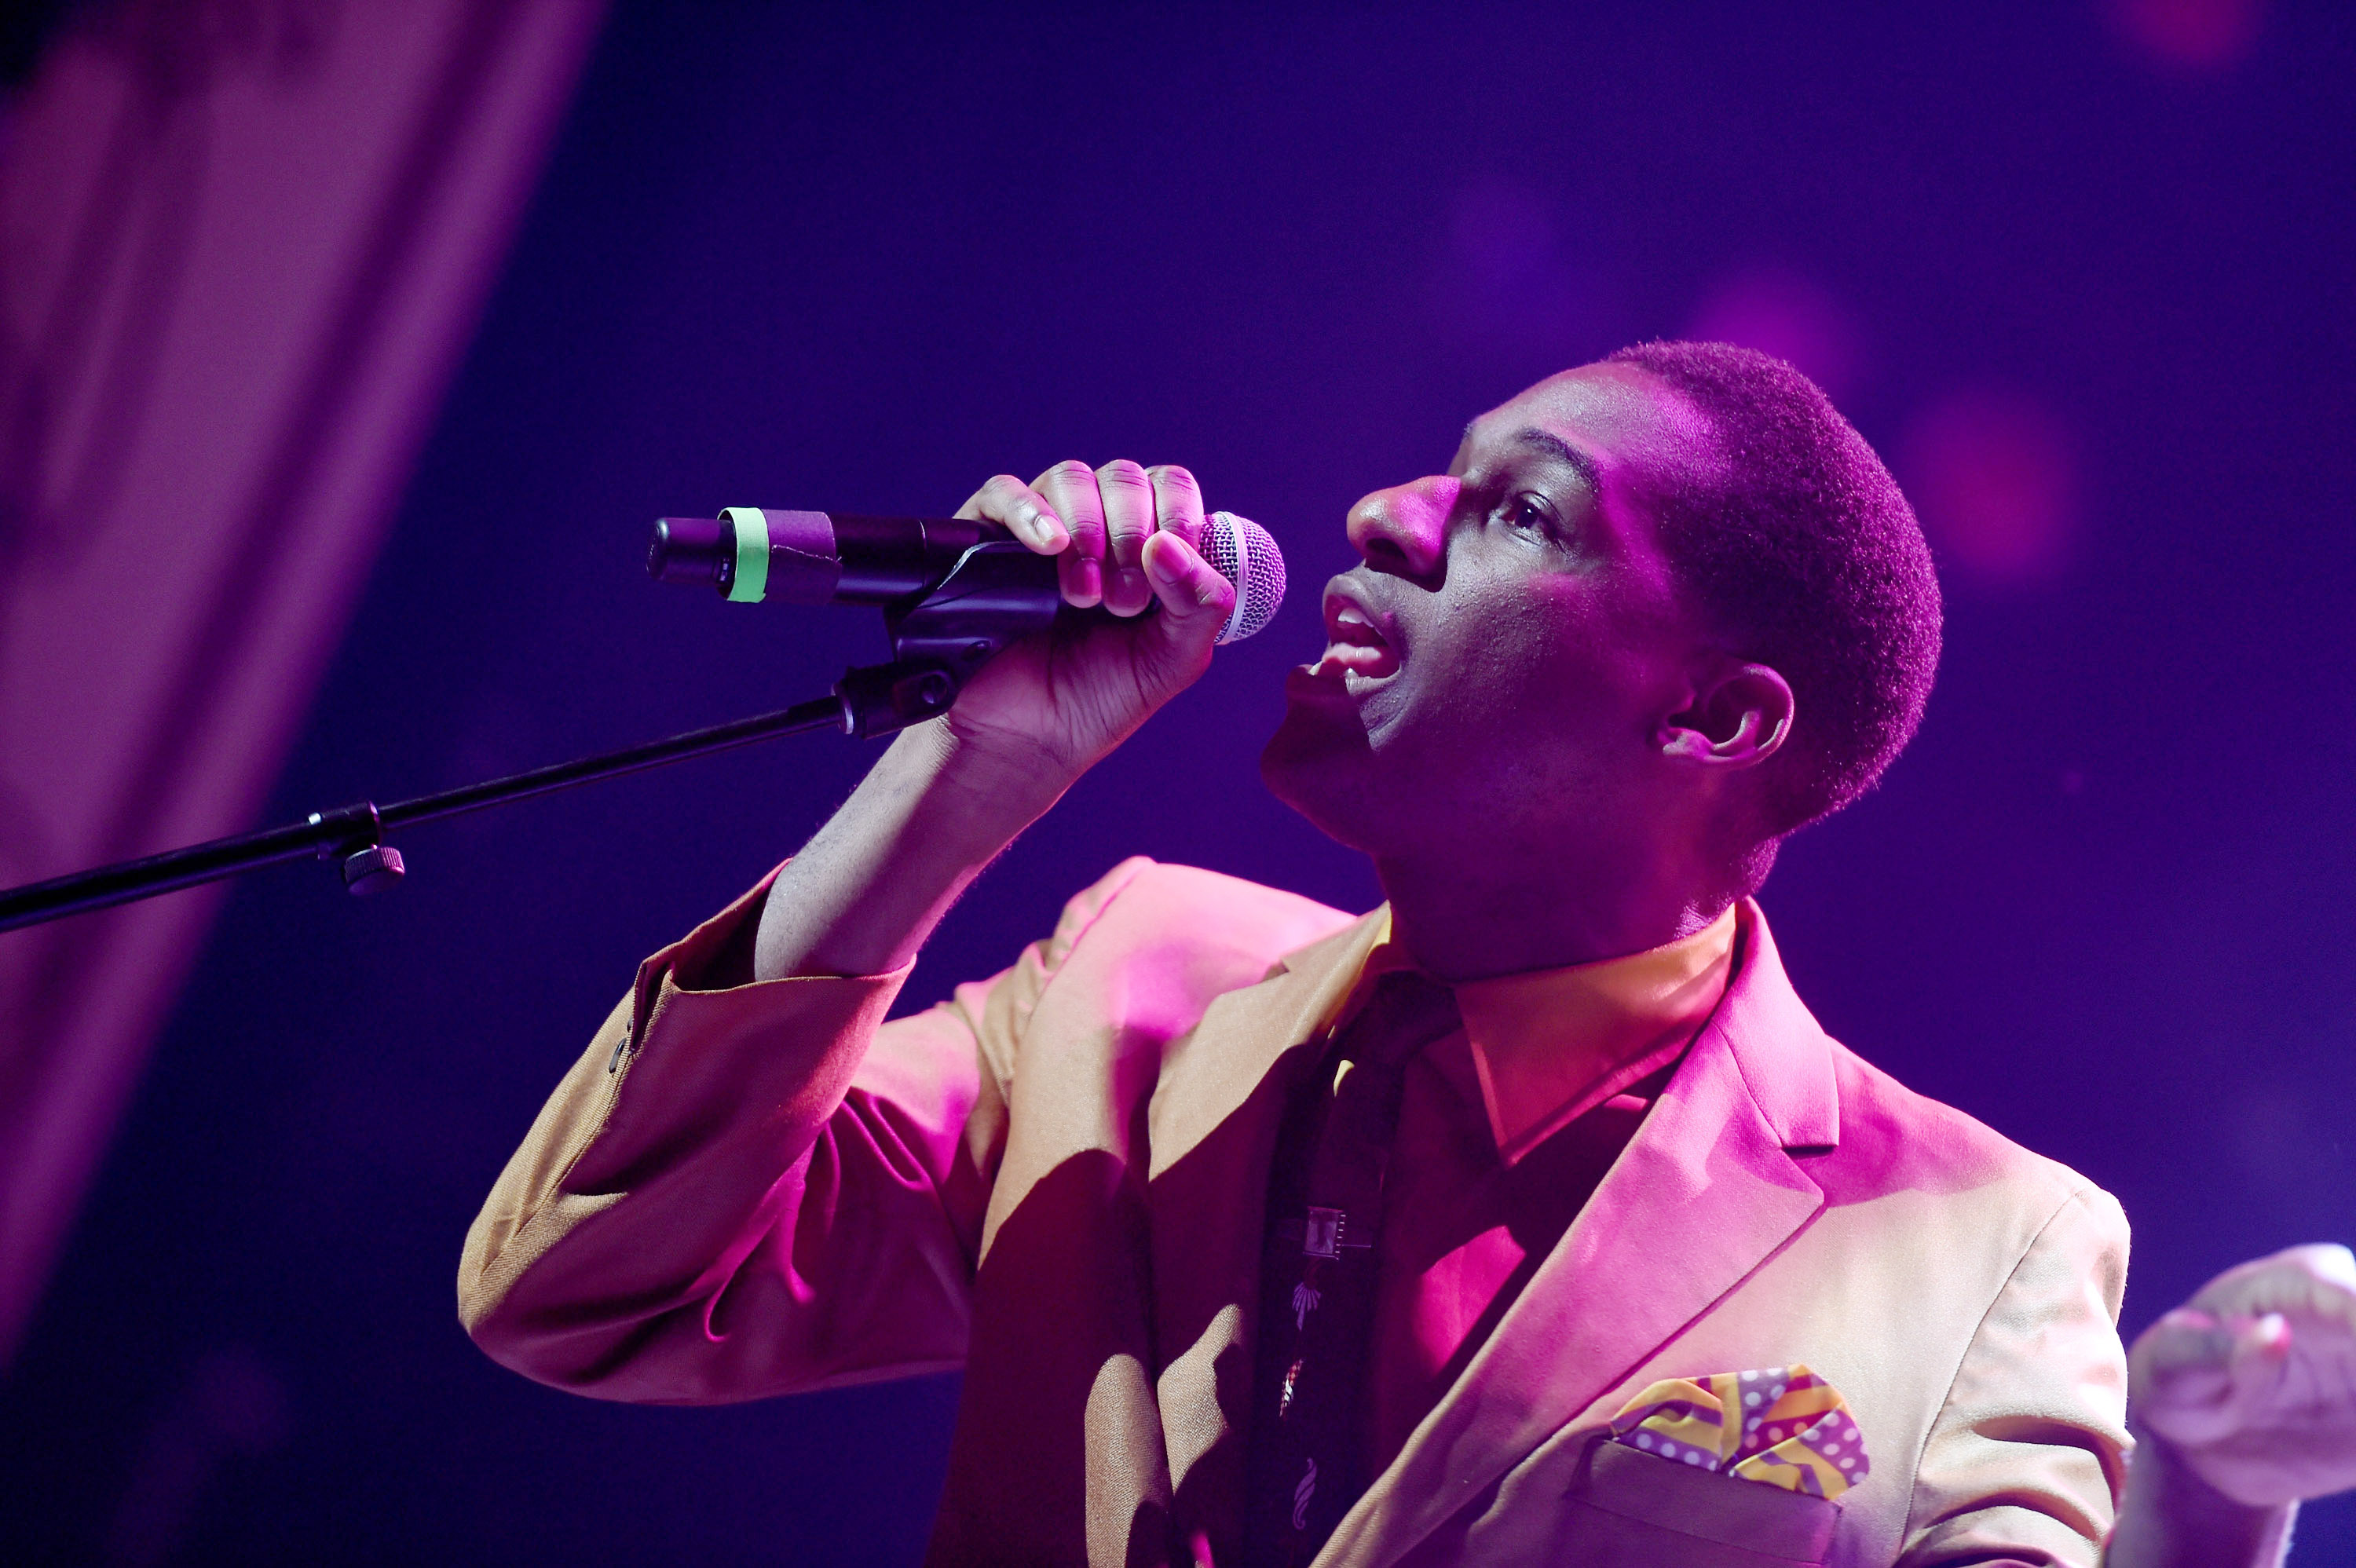 NEW YORK, NY - JUNE 13: Leon Bridges preforms during Prince Walk of Fame Induction and 2016 Spring Gala at The Apollo Theater on June 13, 2016 in New York City. (Photo by Shahar Azran/WireImage)